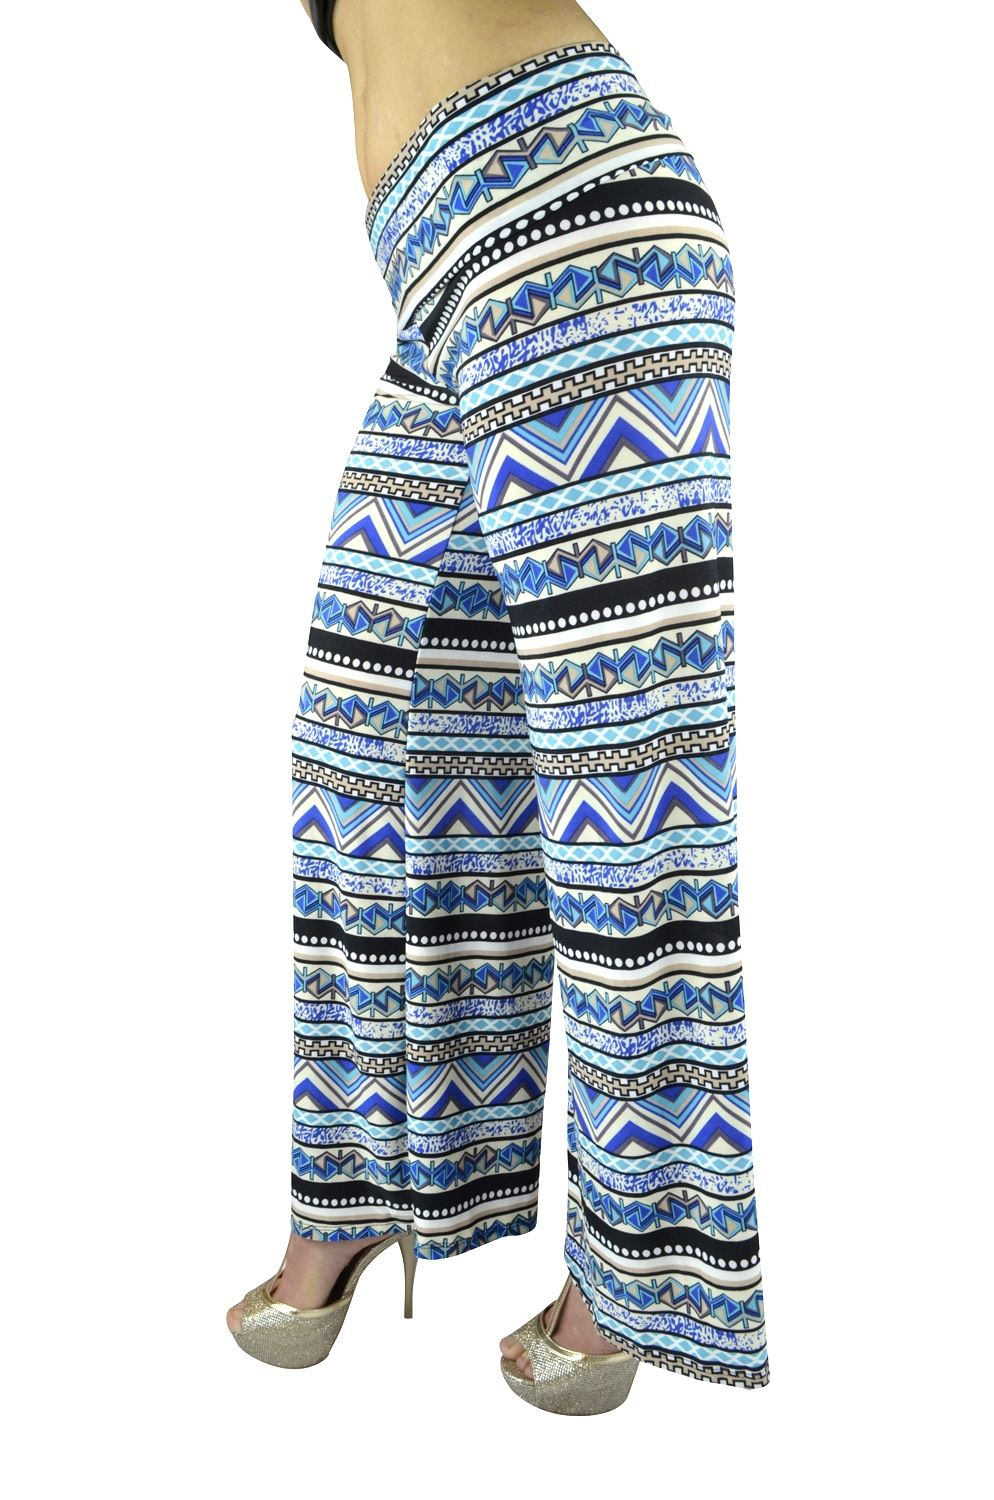 Belle Donne Women Palazzo Pants Chevron Aztec Tribal HighWaist Pants - Blue/Small